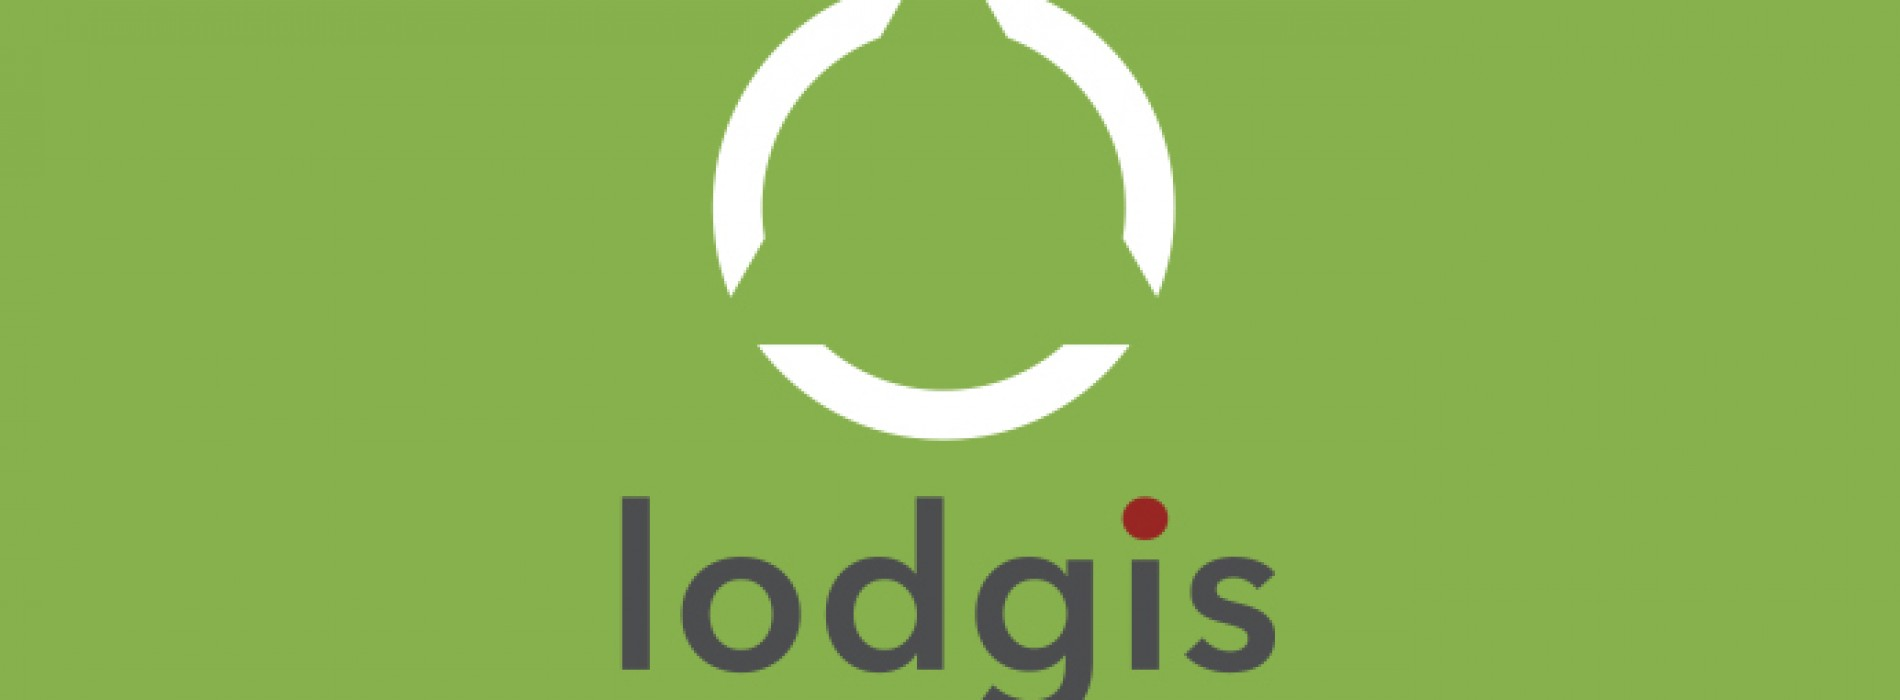 Lodgis acquires two historic landmark hotels in Cambodia